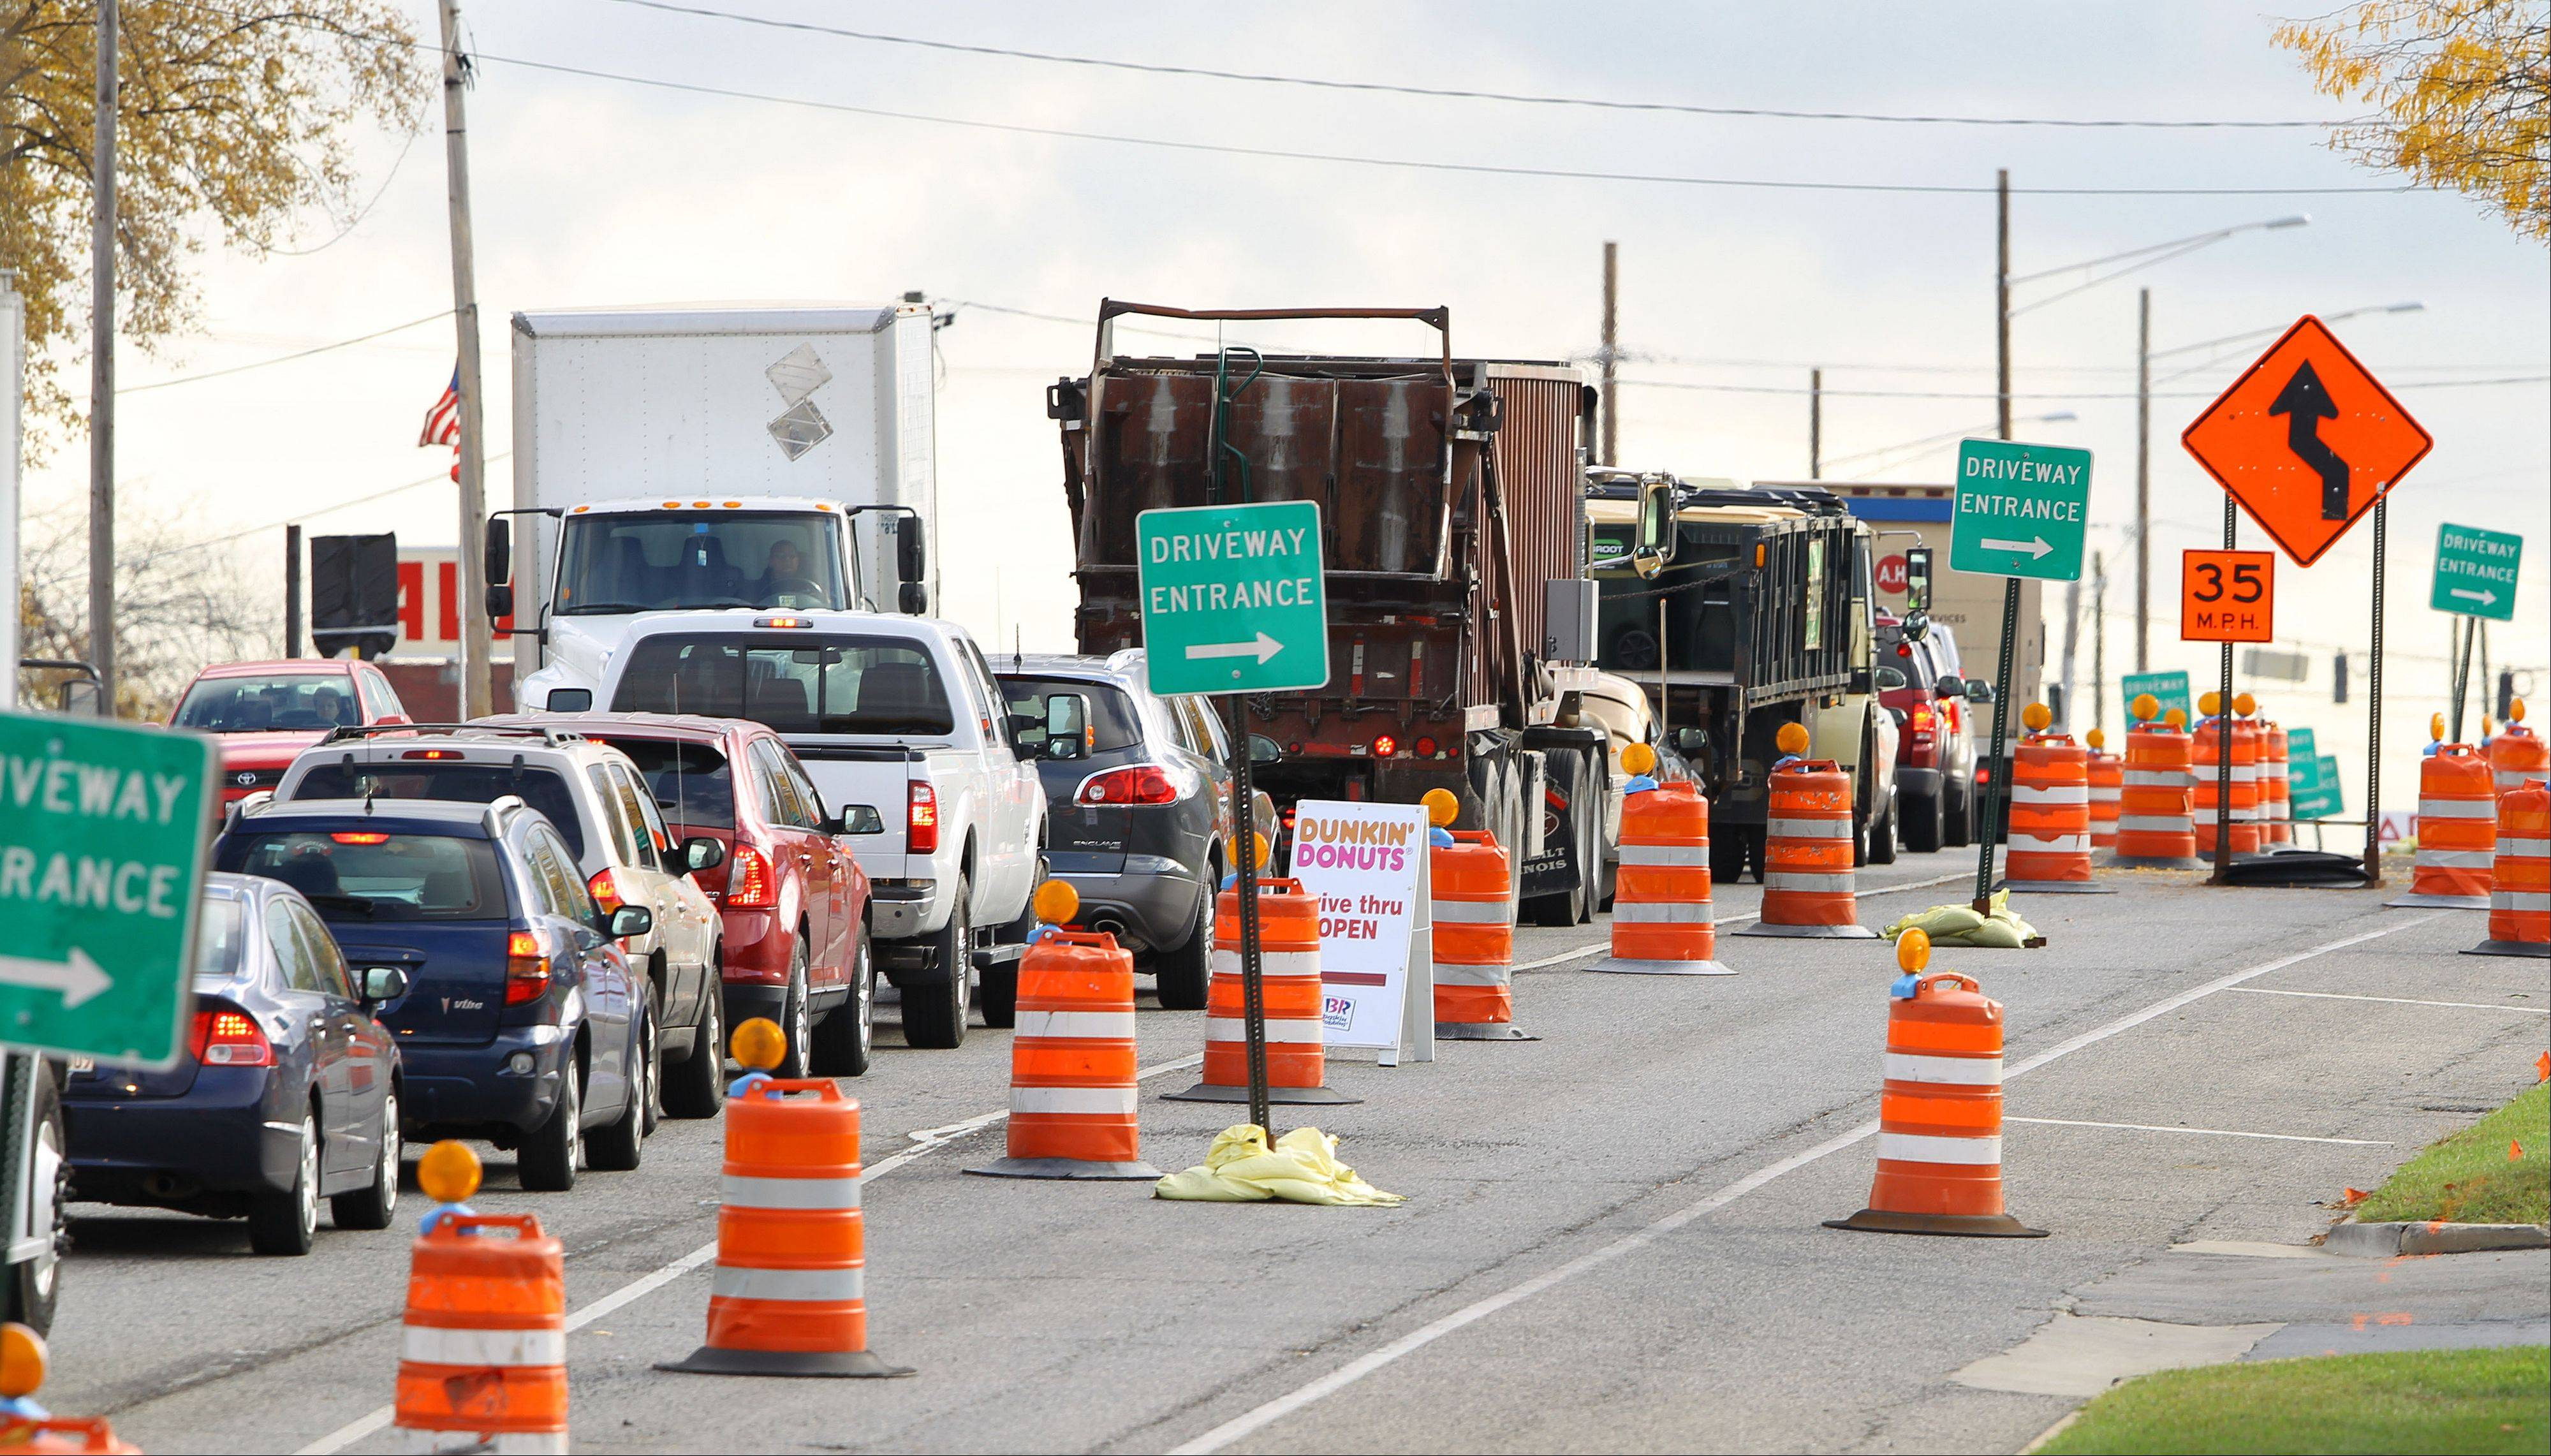 Eastbound traffic on Route 137 approaching Milwaukee Avenue in Libertyville backs up as the road has been narrowed during construction. That configuration will remain in place through winter, a situation that has frustrated village officials and had a negative impact on businesses.